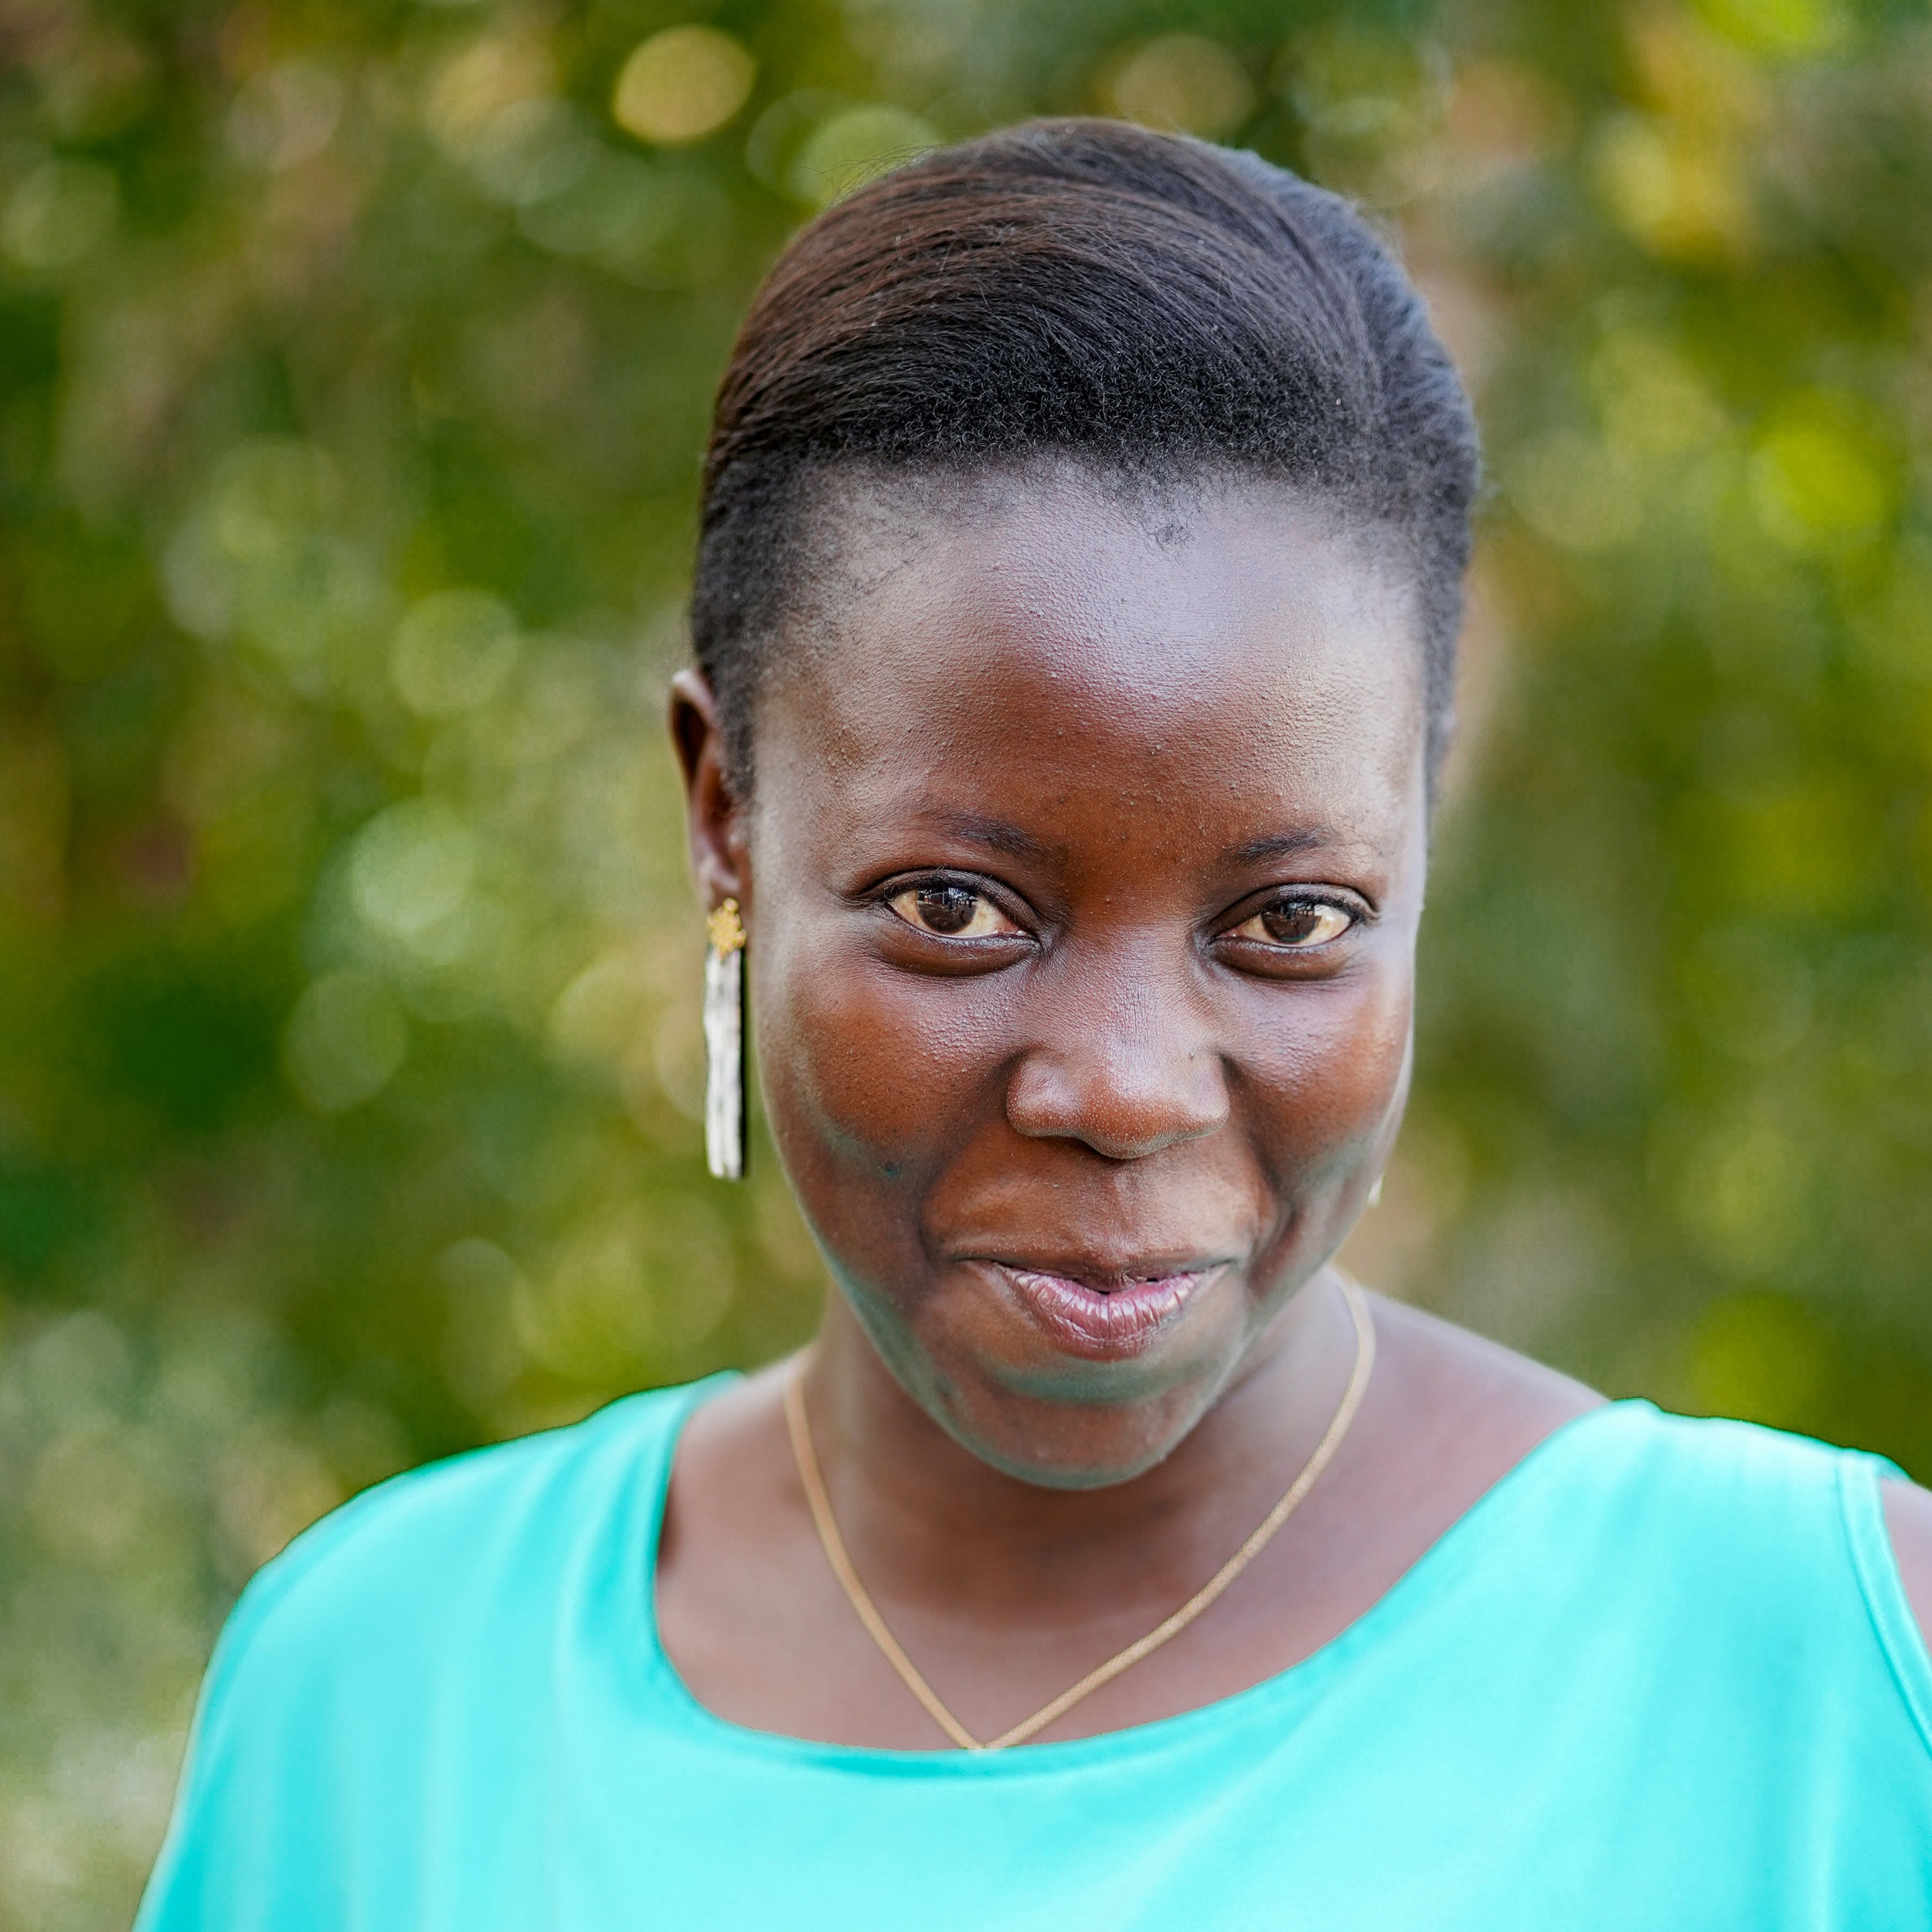 vivian MirembeProgram Manager, holistic wellness support - Vivian is the Program Manager, she oversees all Holistic Wellness Support activities. Vivian offers psychosocial support to Akola women and also mentors a team of staff and peer leaders to ensure that members have the supports they need to move out of crisis and become true agents of transformation.